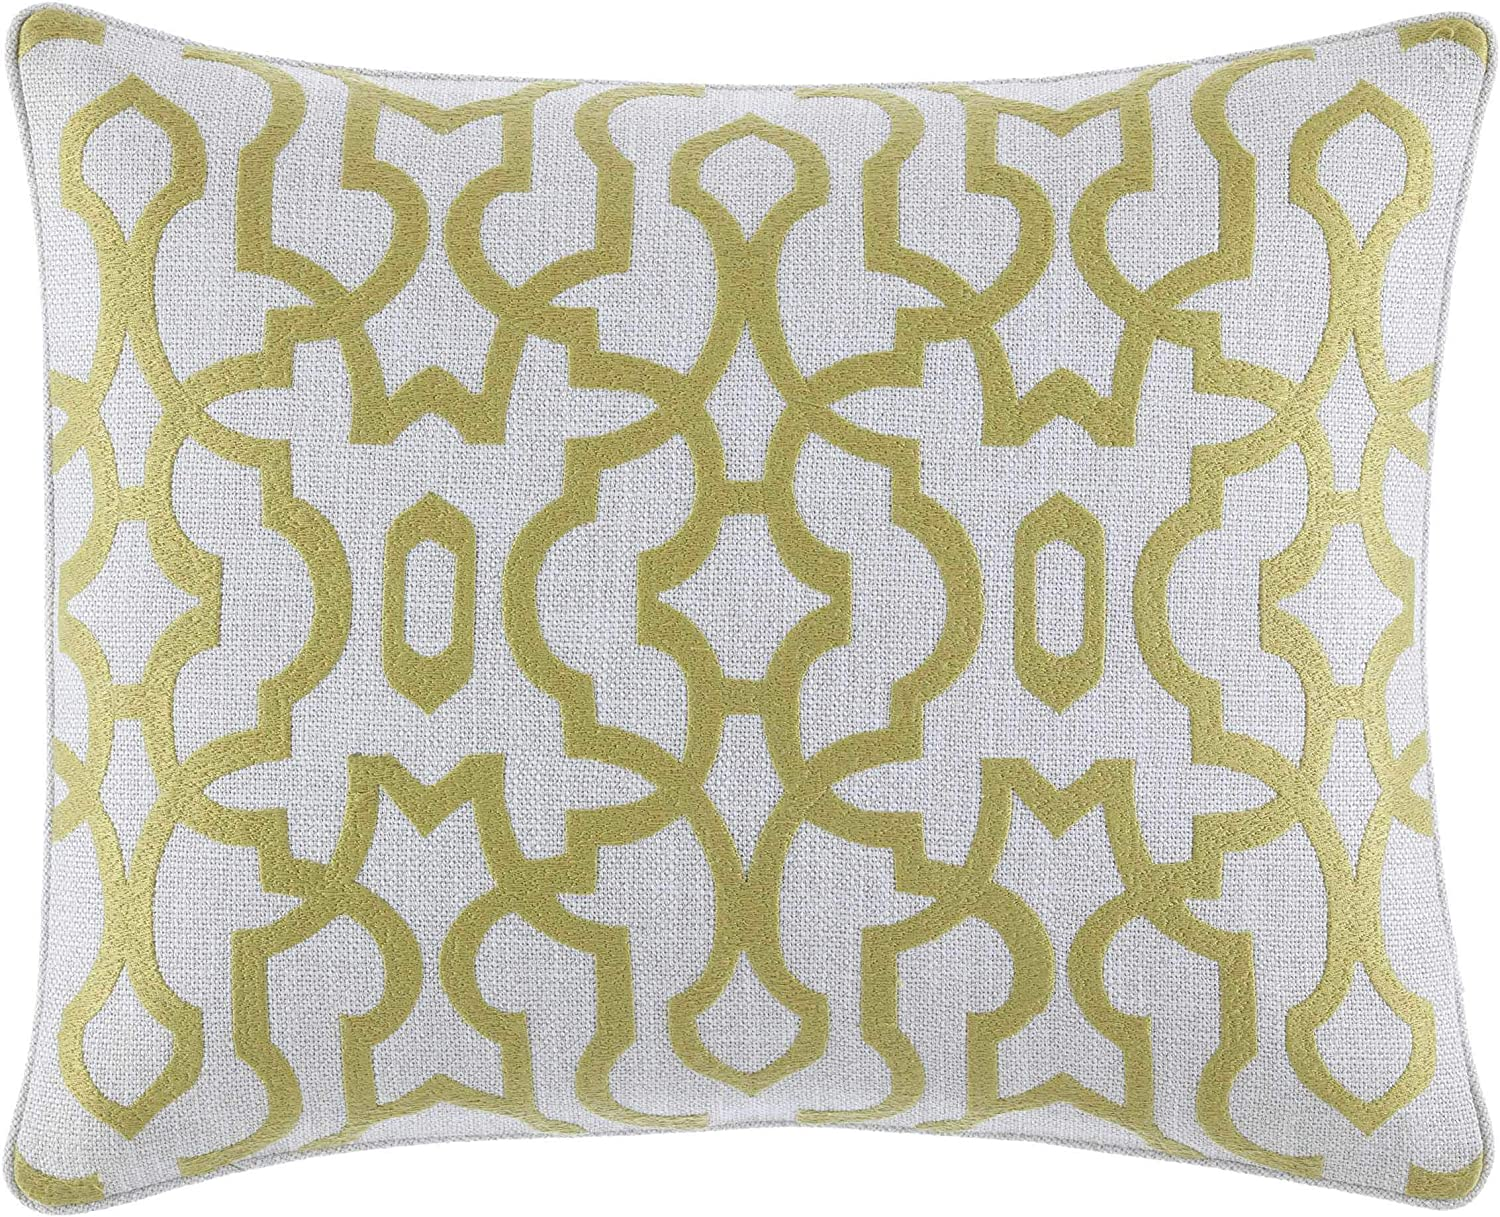 Tommy Bahama Super-cheap Palmiers Embroidered Trellis Pillow 16x20 Throw Max 85% OFF M